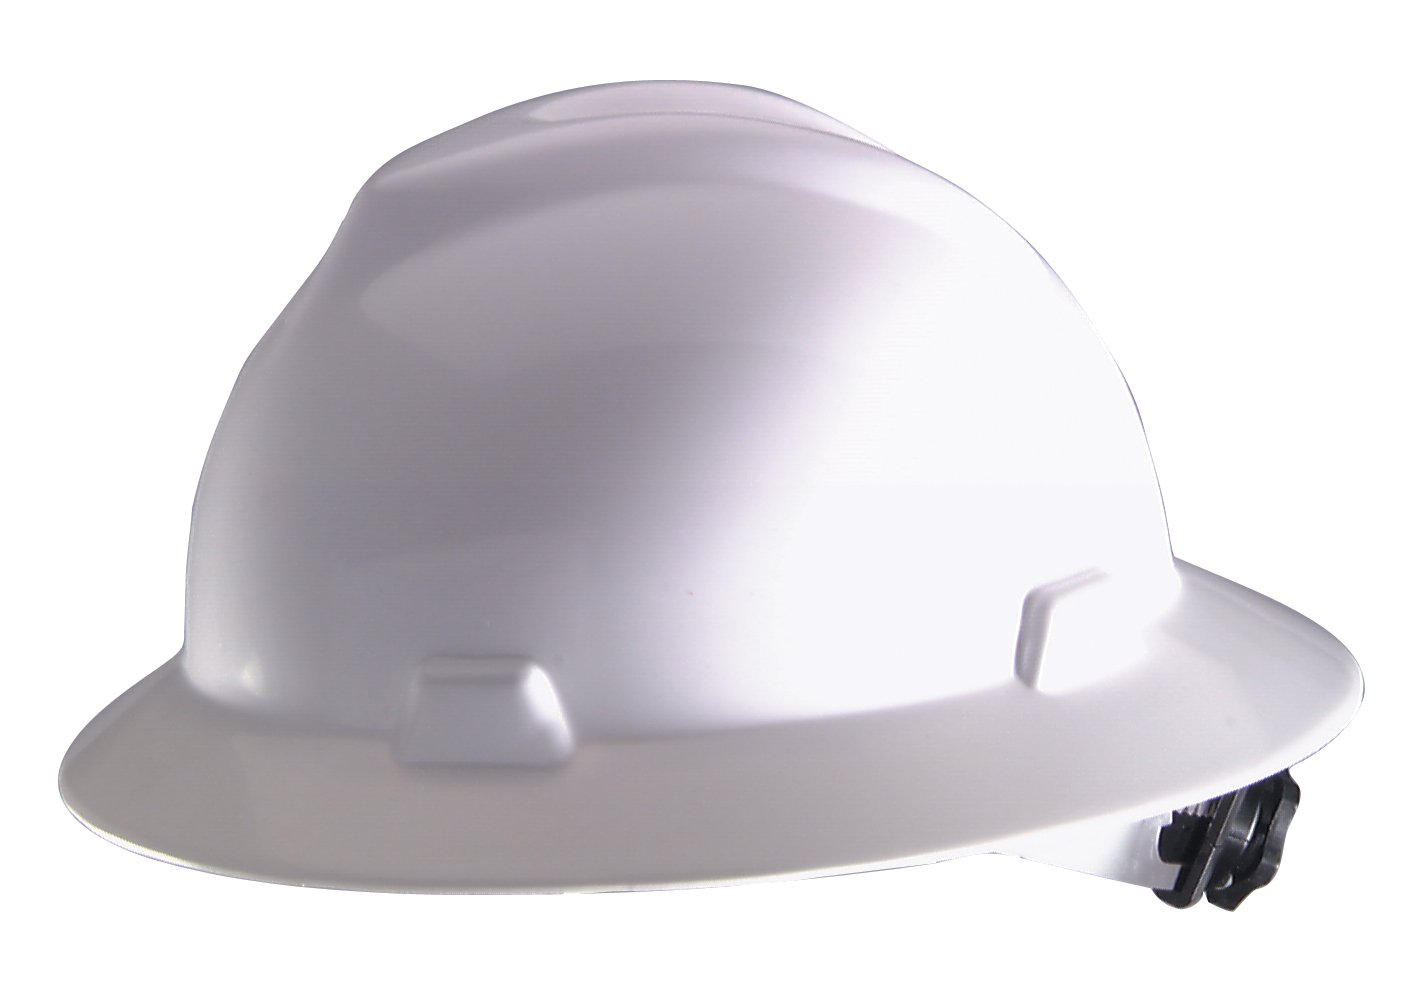 Image result for hard hat